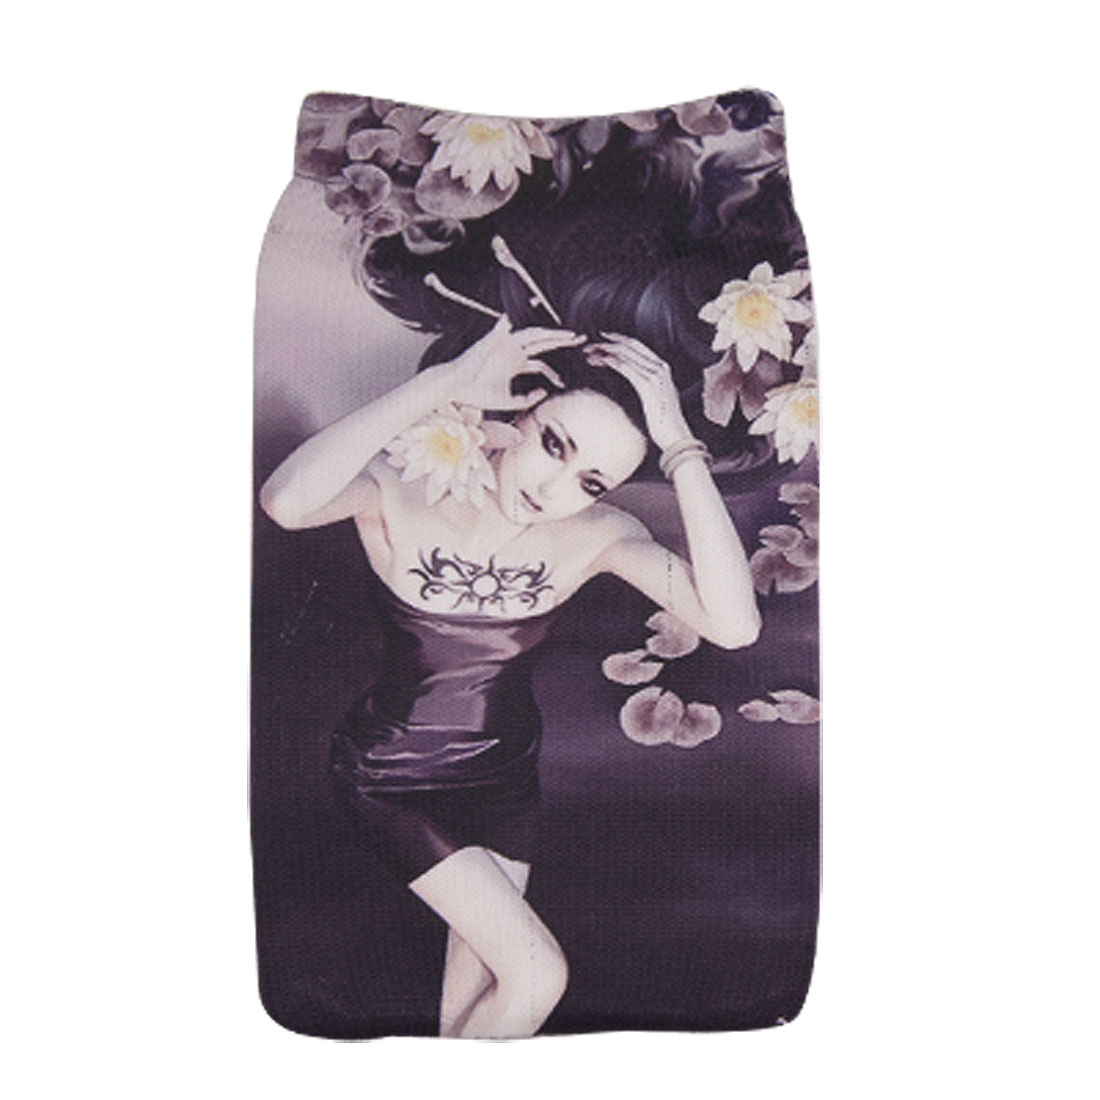 Flowers Lady Pattern Stretchy Sock Pouch for Mobile Phone